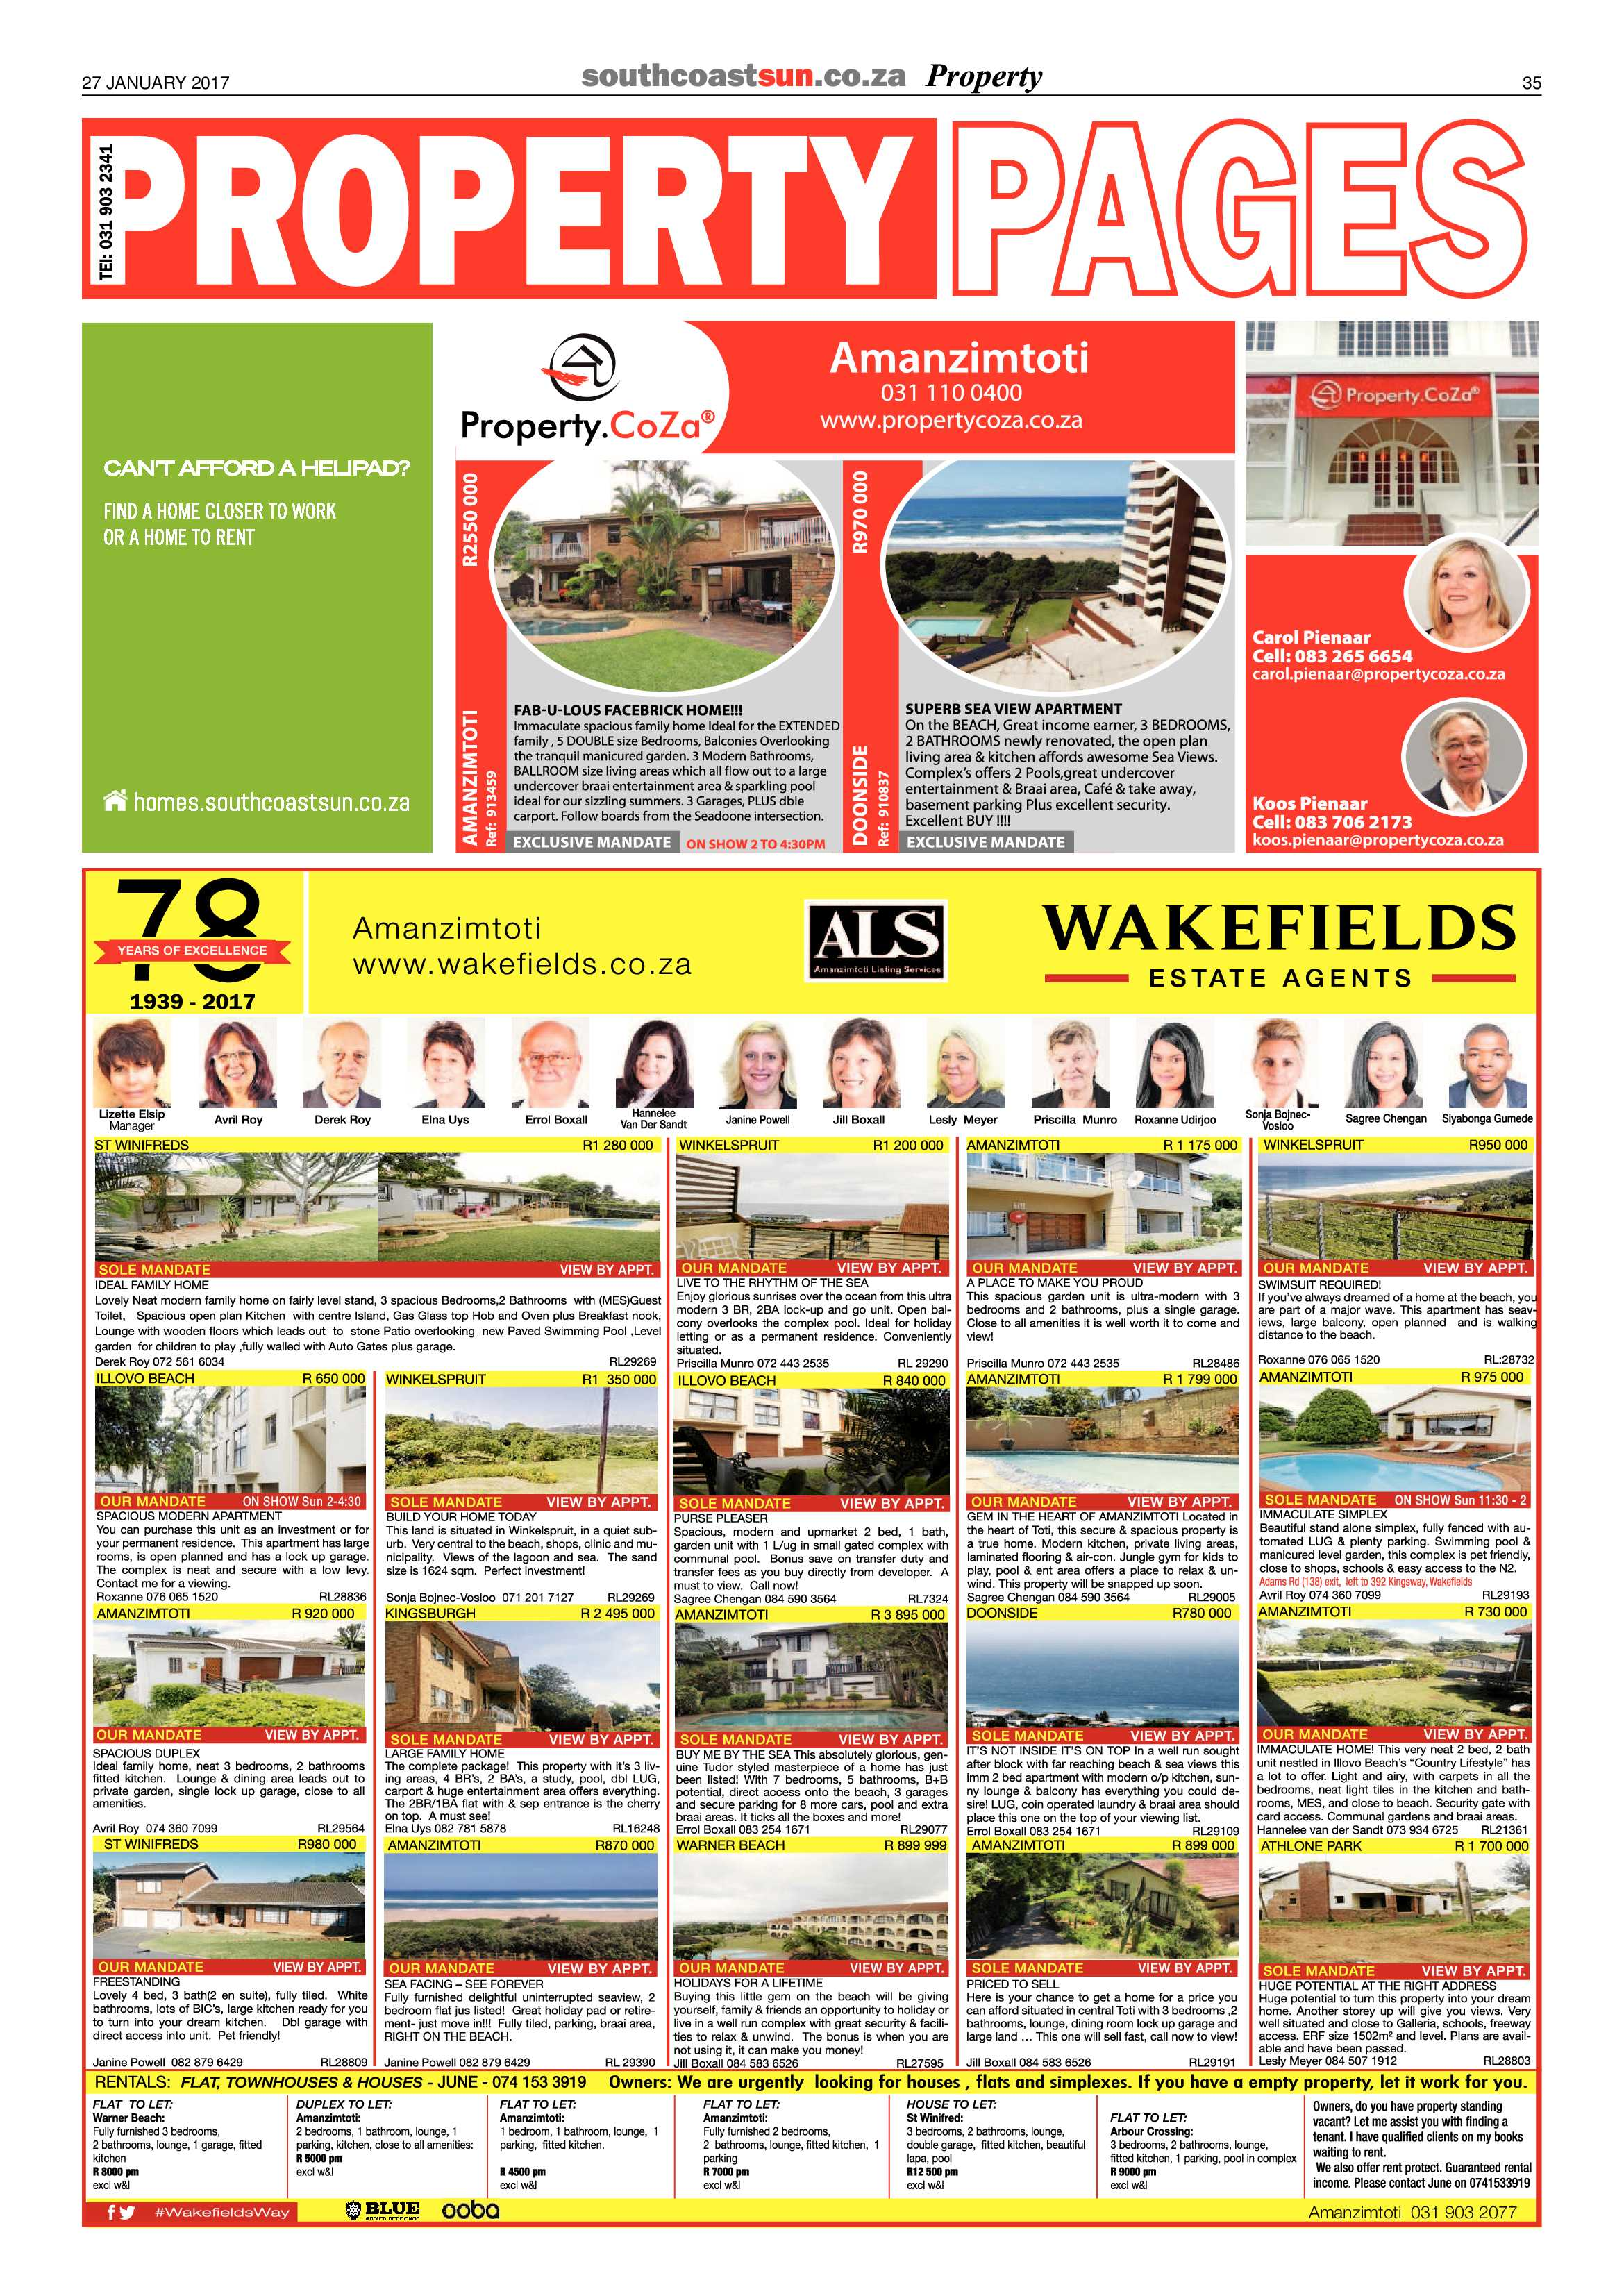 27-january-2017-epapers-page-35